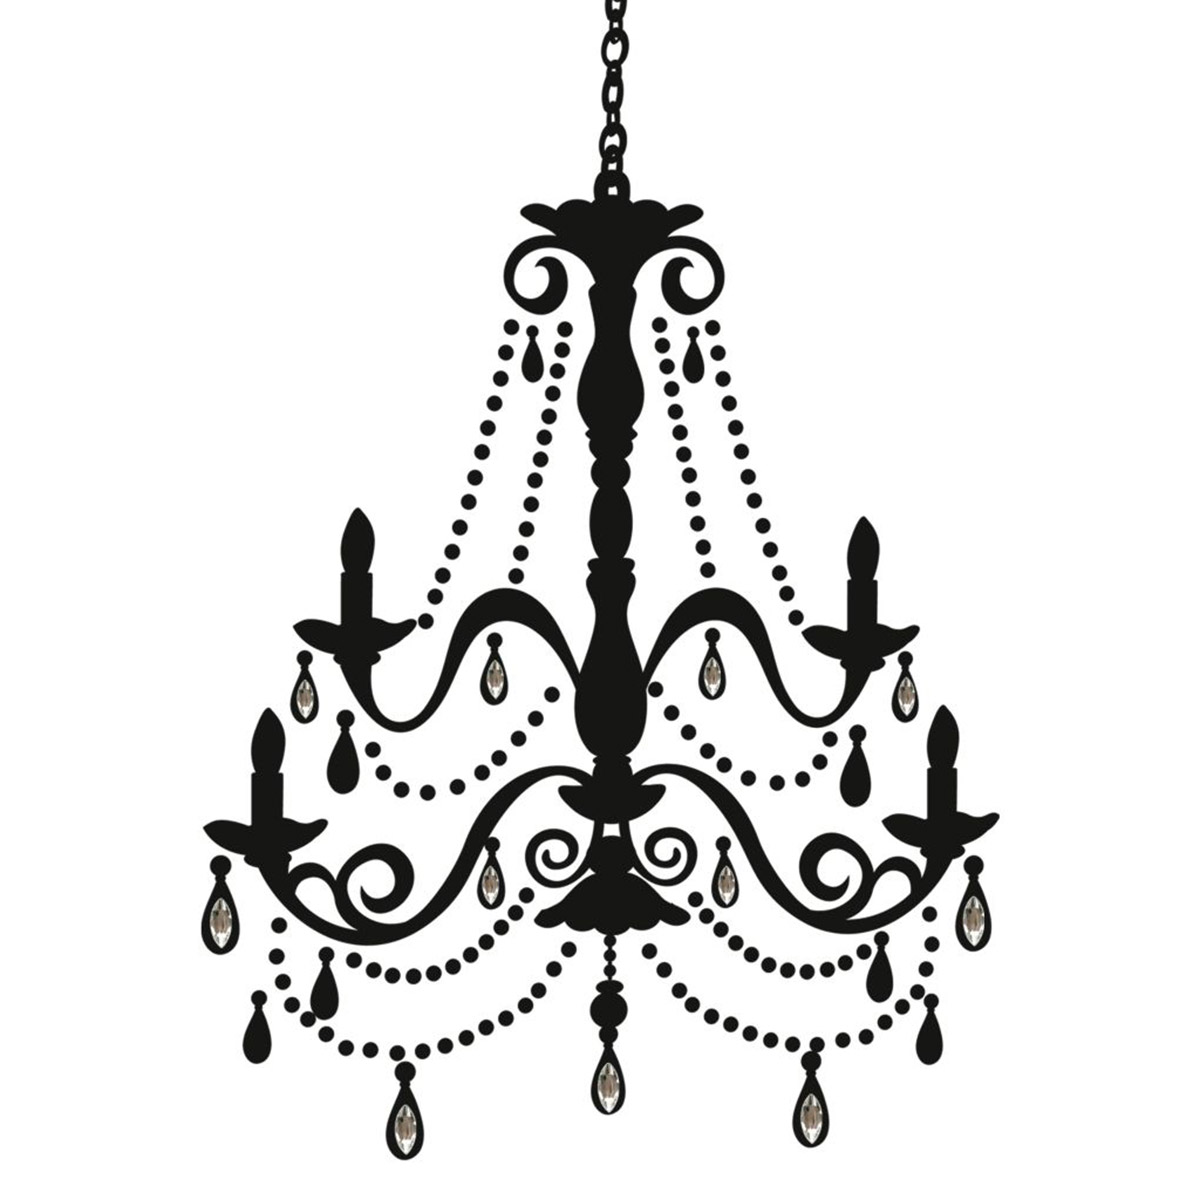 Simple chandelier silhouette at getdrawings free for personal 1200x1200 elegant chandelier silhouette giant wall decal removable decor aloadofball Gallery